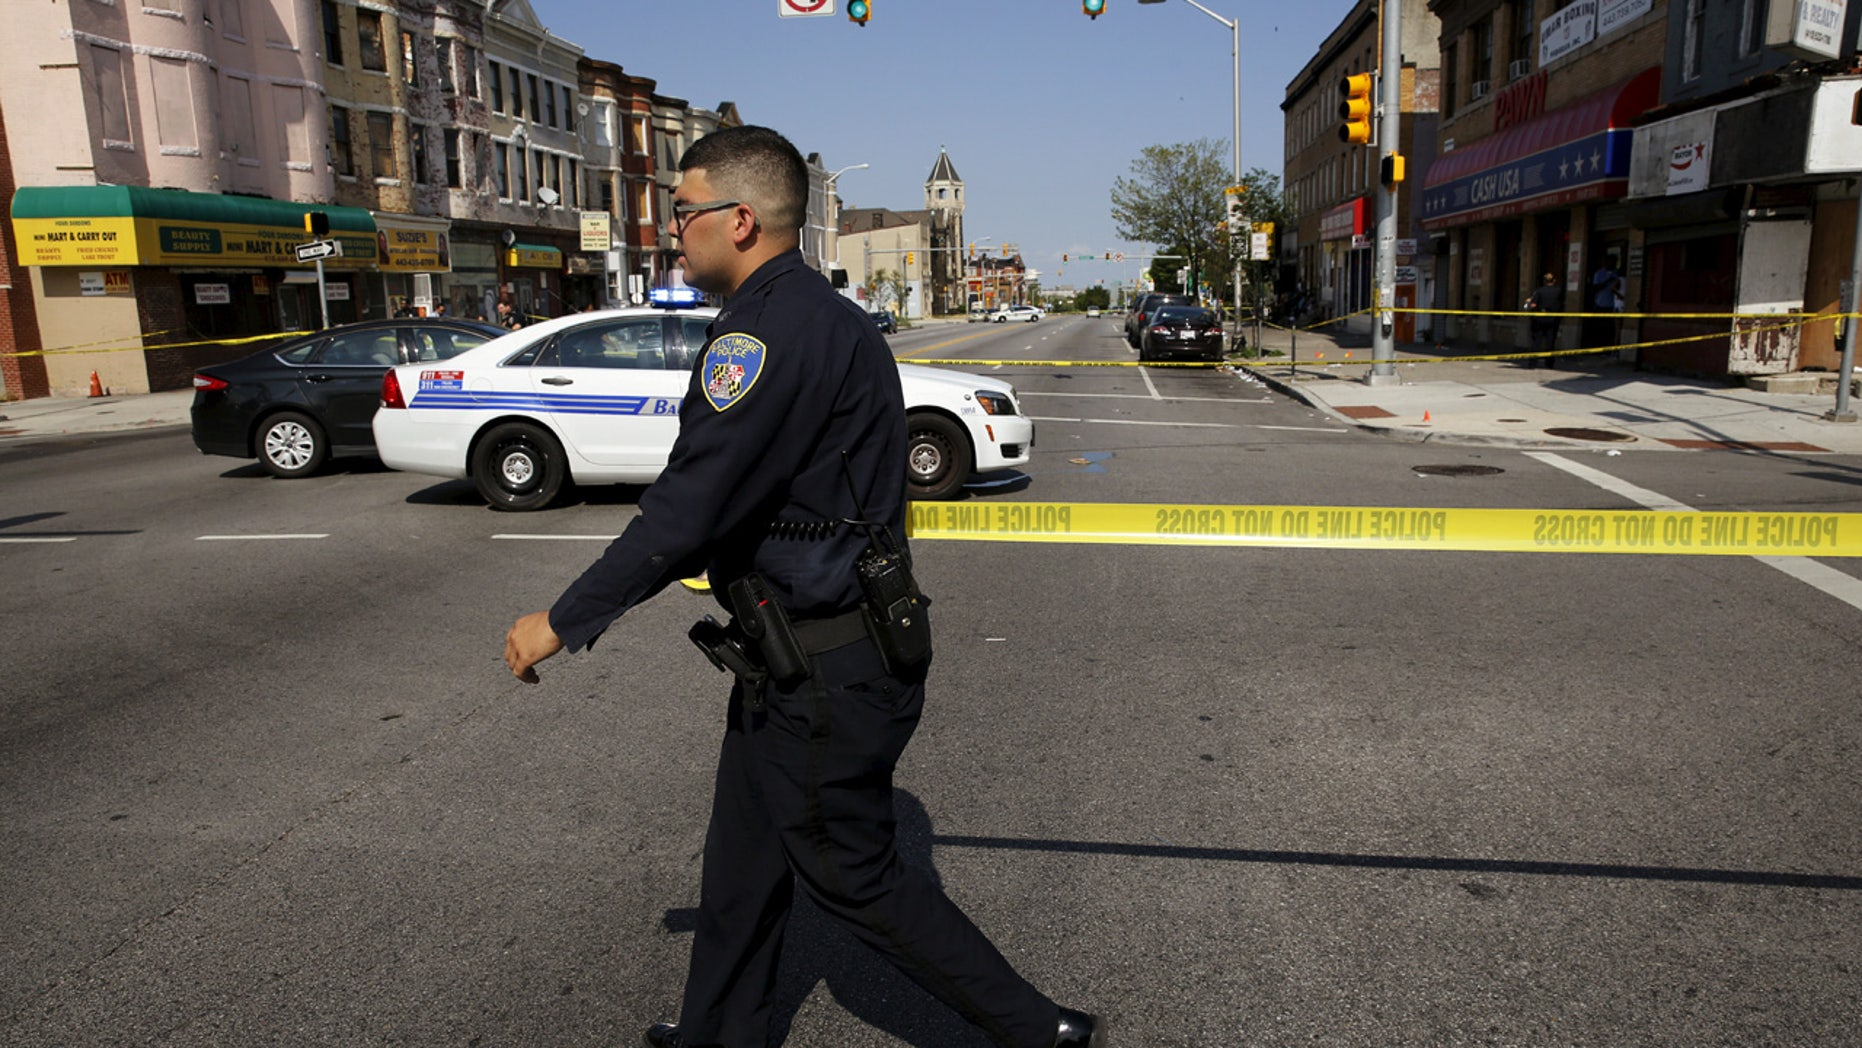 A Baltimore police officer attempts to secure a crime scene with tape at the scene of a shooting at the intersection of West North Avenue and Druid Hill Avenue in West Baltimore, Maryland.